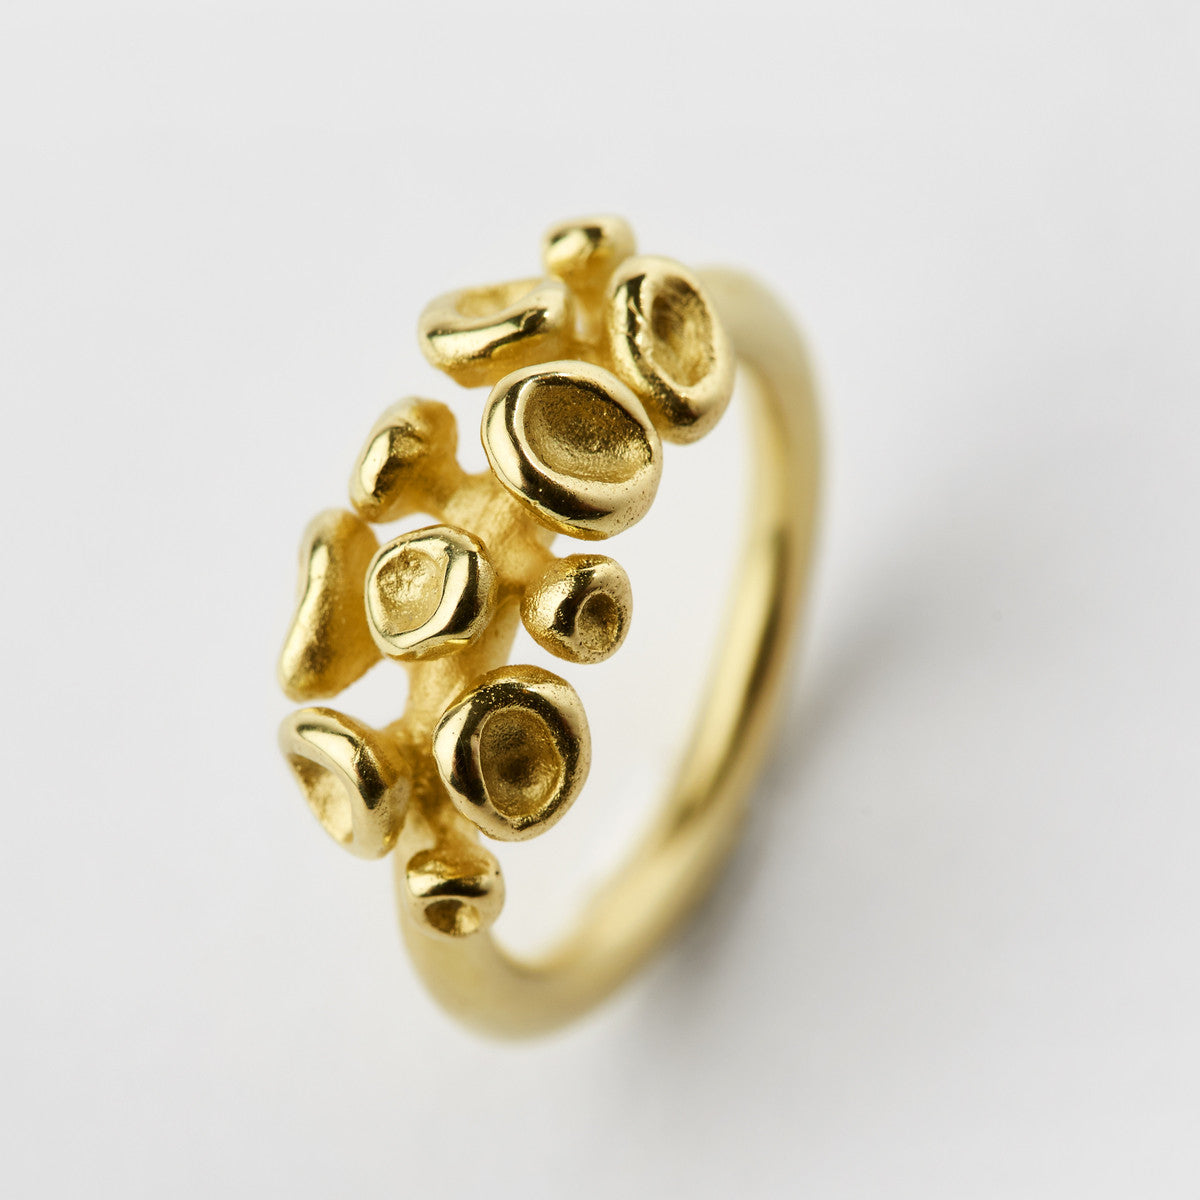 Erythrocyte Gold Ring